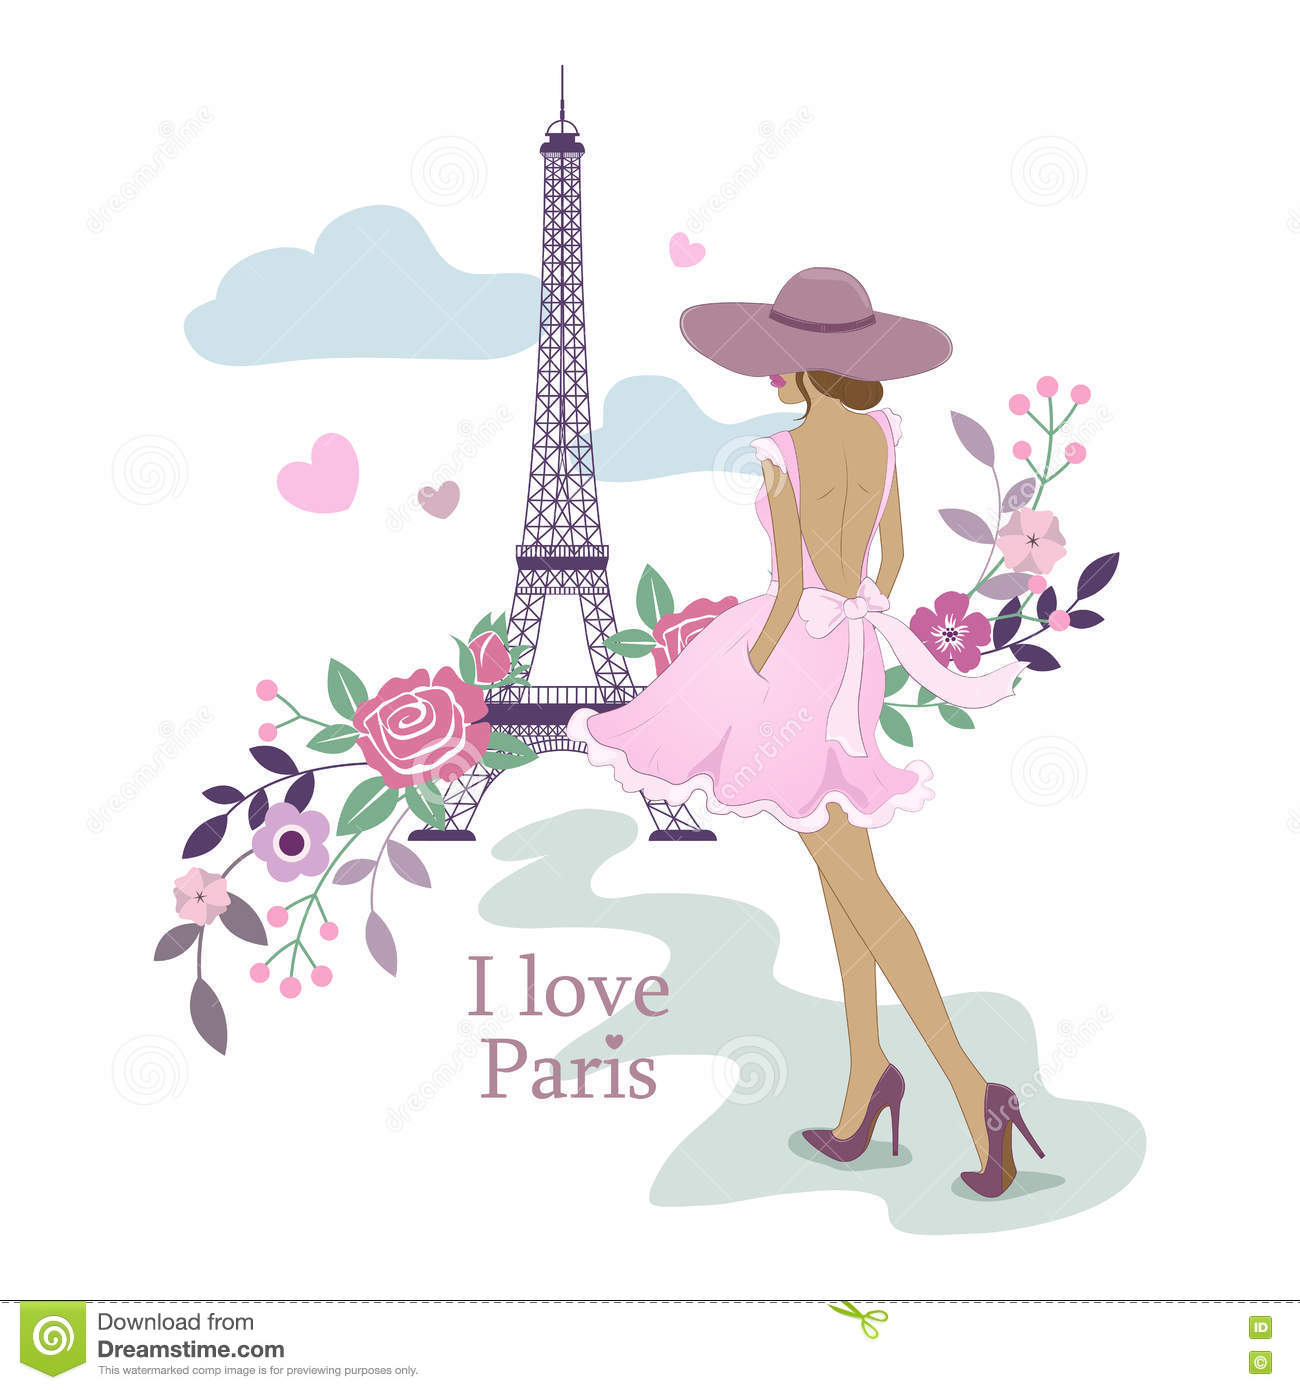 I Love Paris Wallpaper cartoon : Quiero Paris Imagen De La Torre Eiffel Y De Las Mujeres Ilustracion Del Vector Paris Y Flores ...